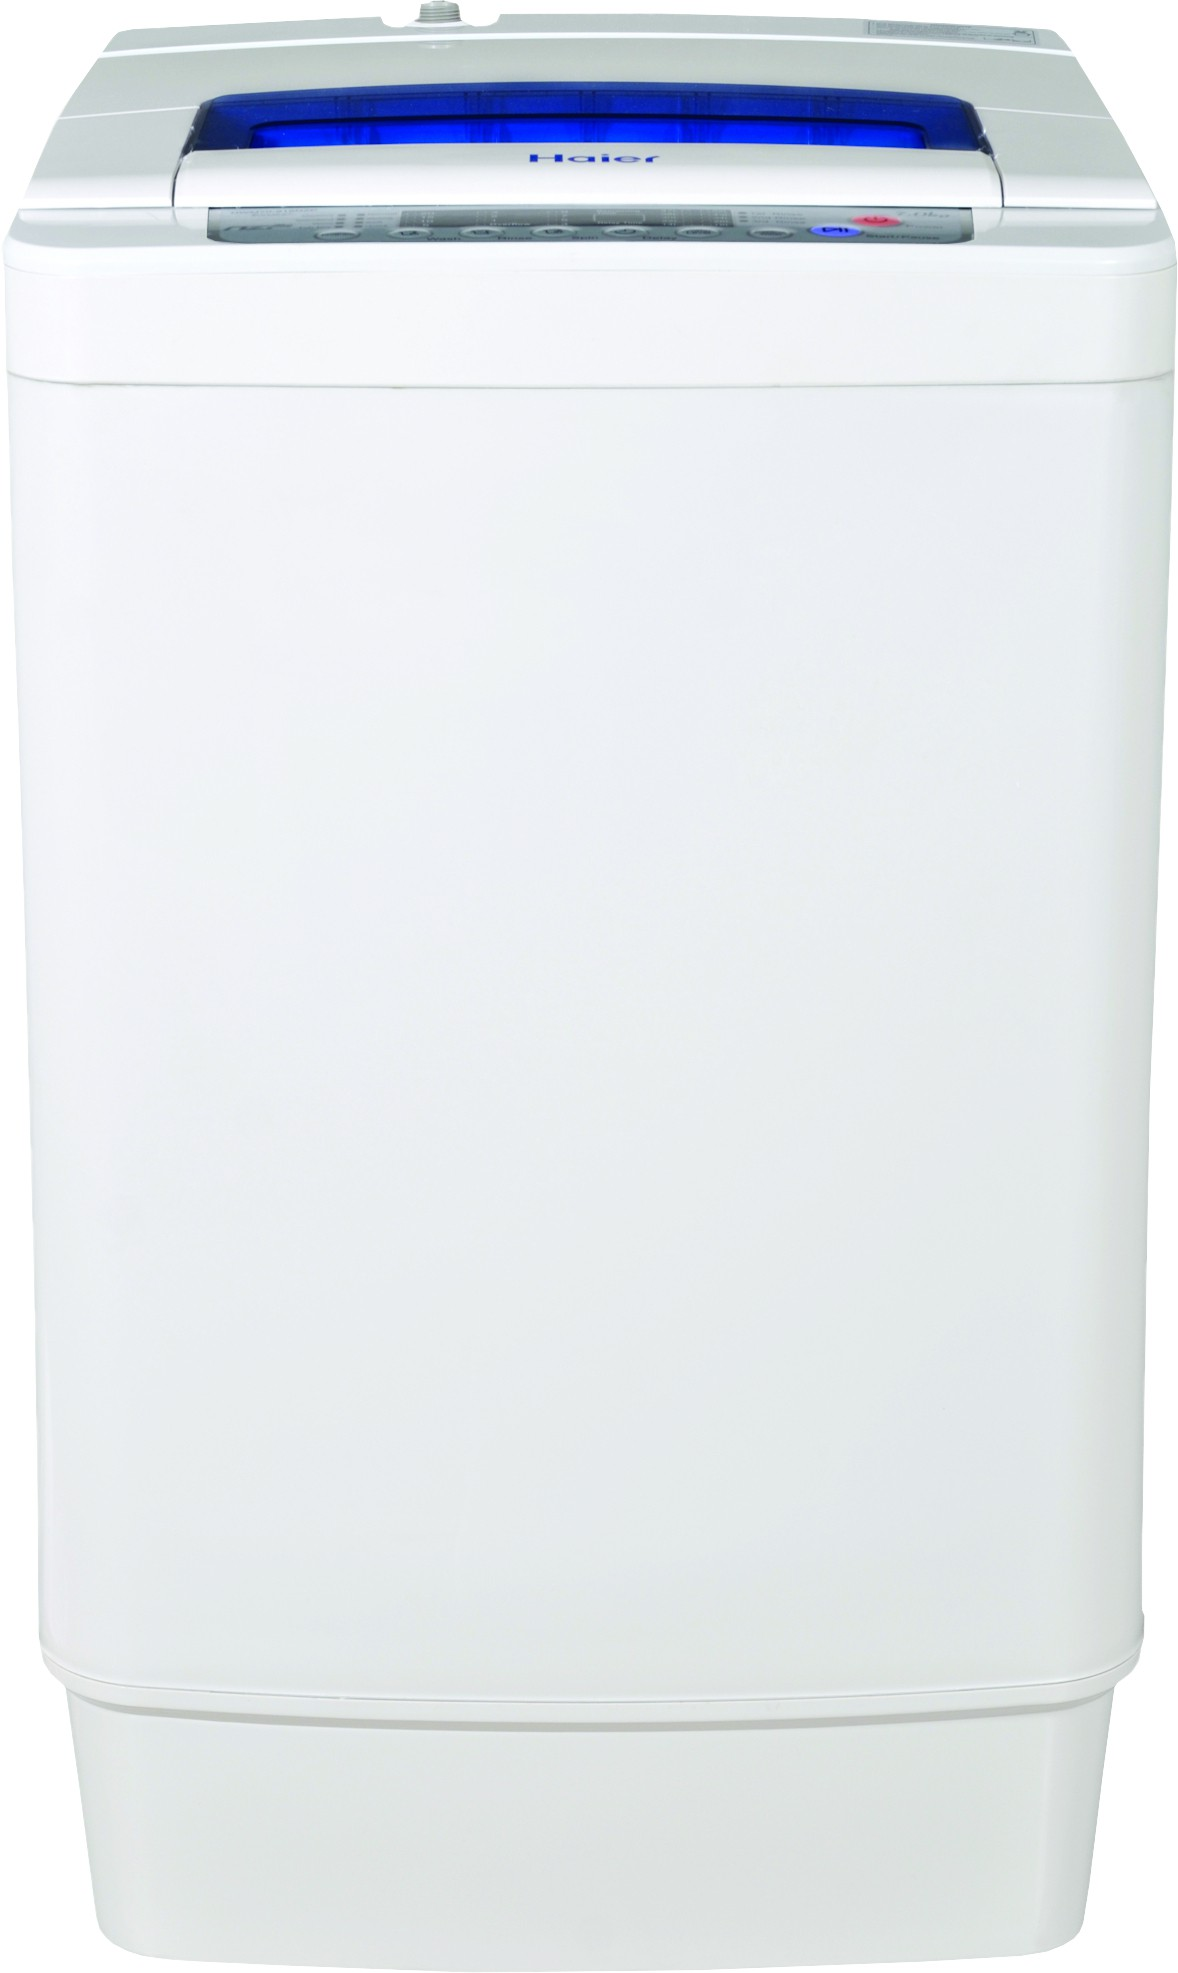 HAIER HWM-60-918NZP 6KG Fully Automatic Top Load Washing Machine